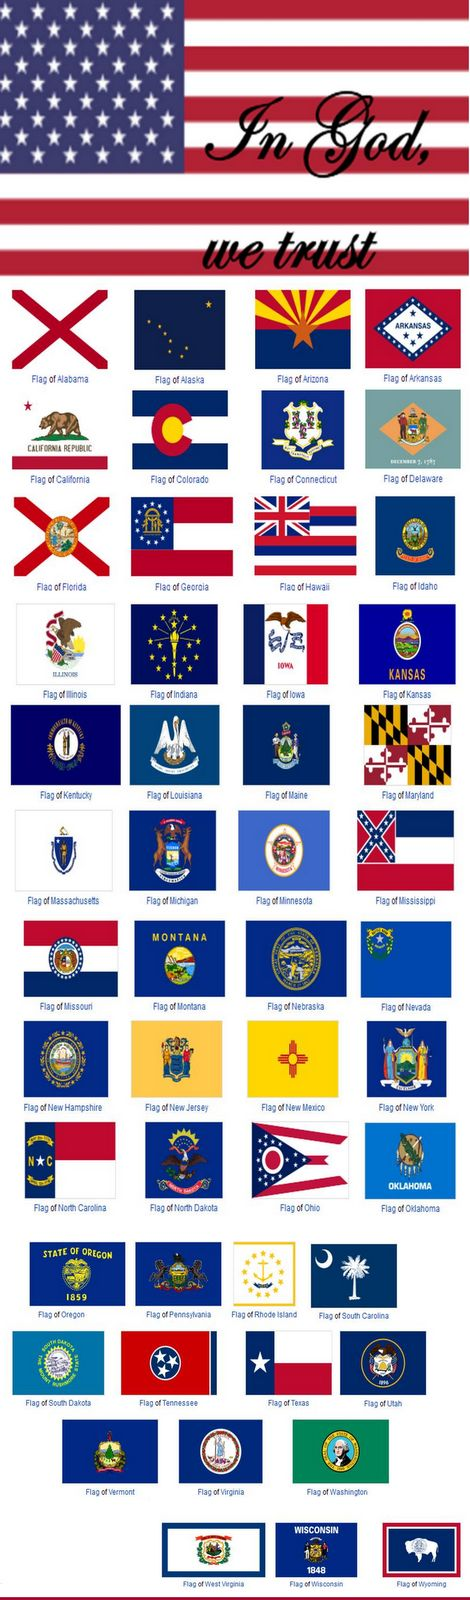 America, the Beautiful: The United States of America State Flags #infographic